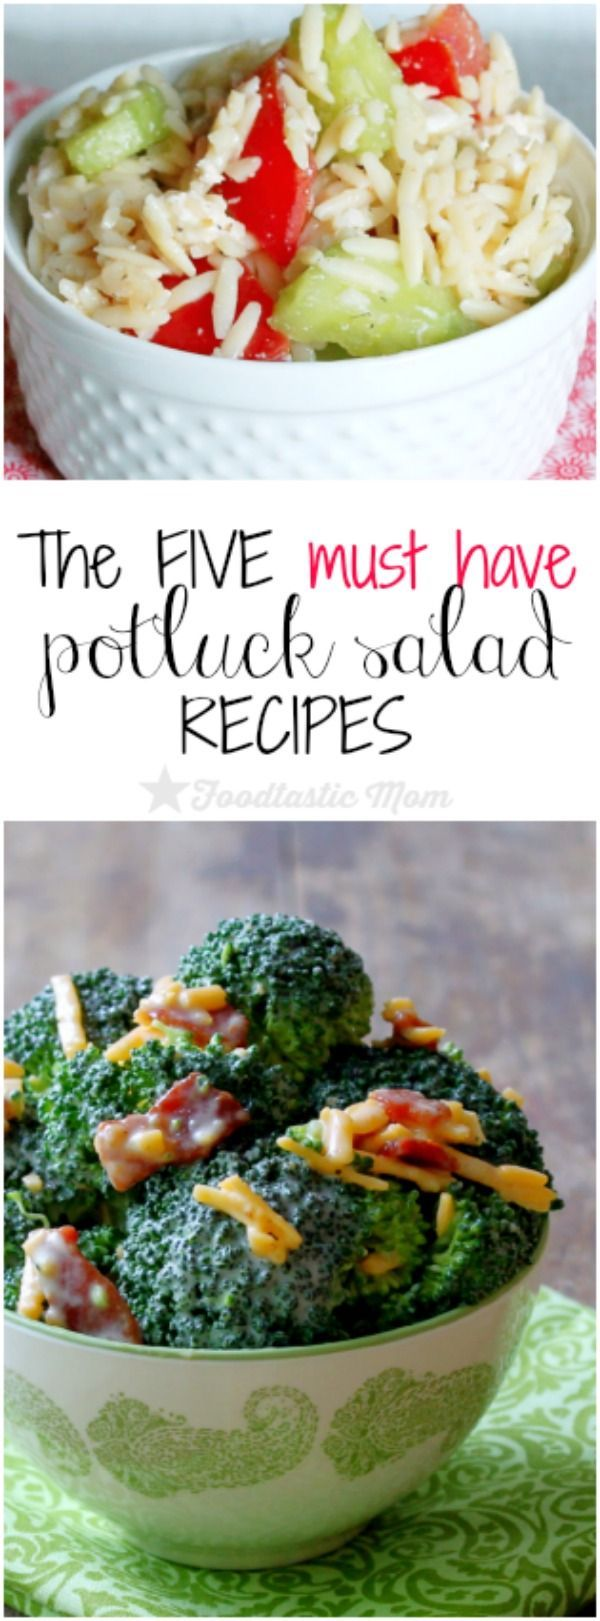 The Five Must Have Potluck Salad Recipes